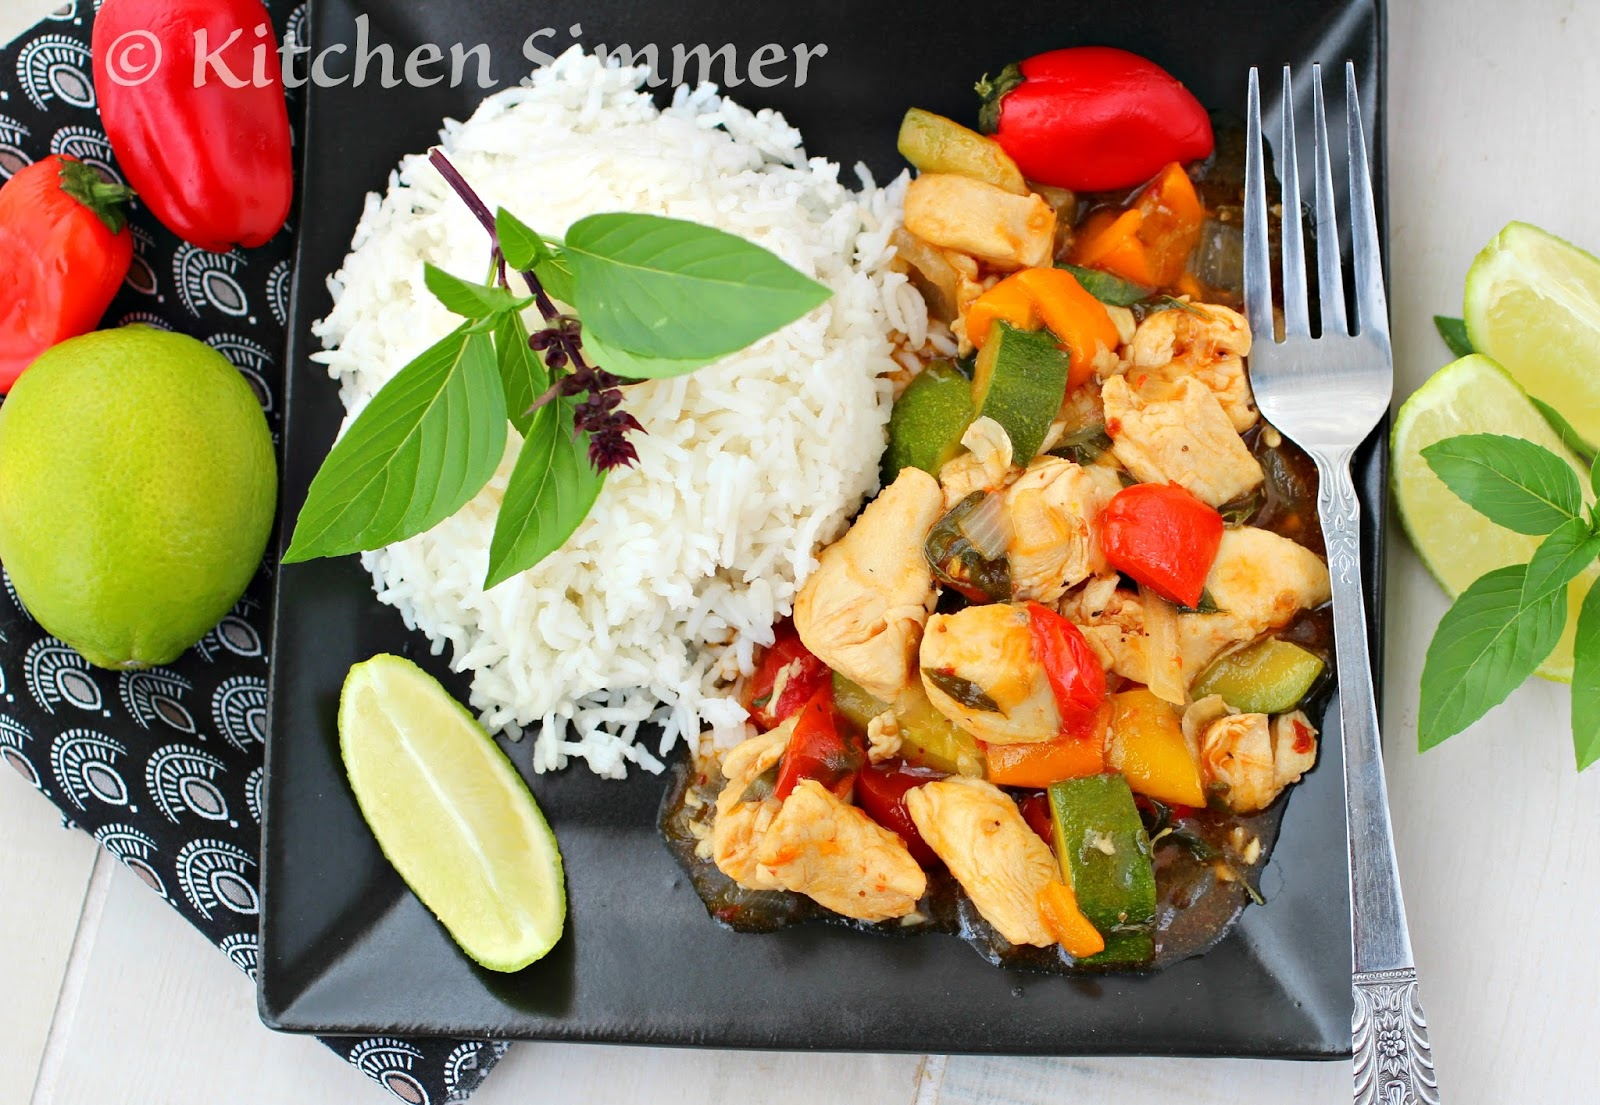 Kitchen simmer thai basil chicken and vegetable stir fry copyright all recipes content and images unless otherwise stated are the sole property of kitchen simmer formerly known as curry and comfort forumfinder Image collections